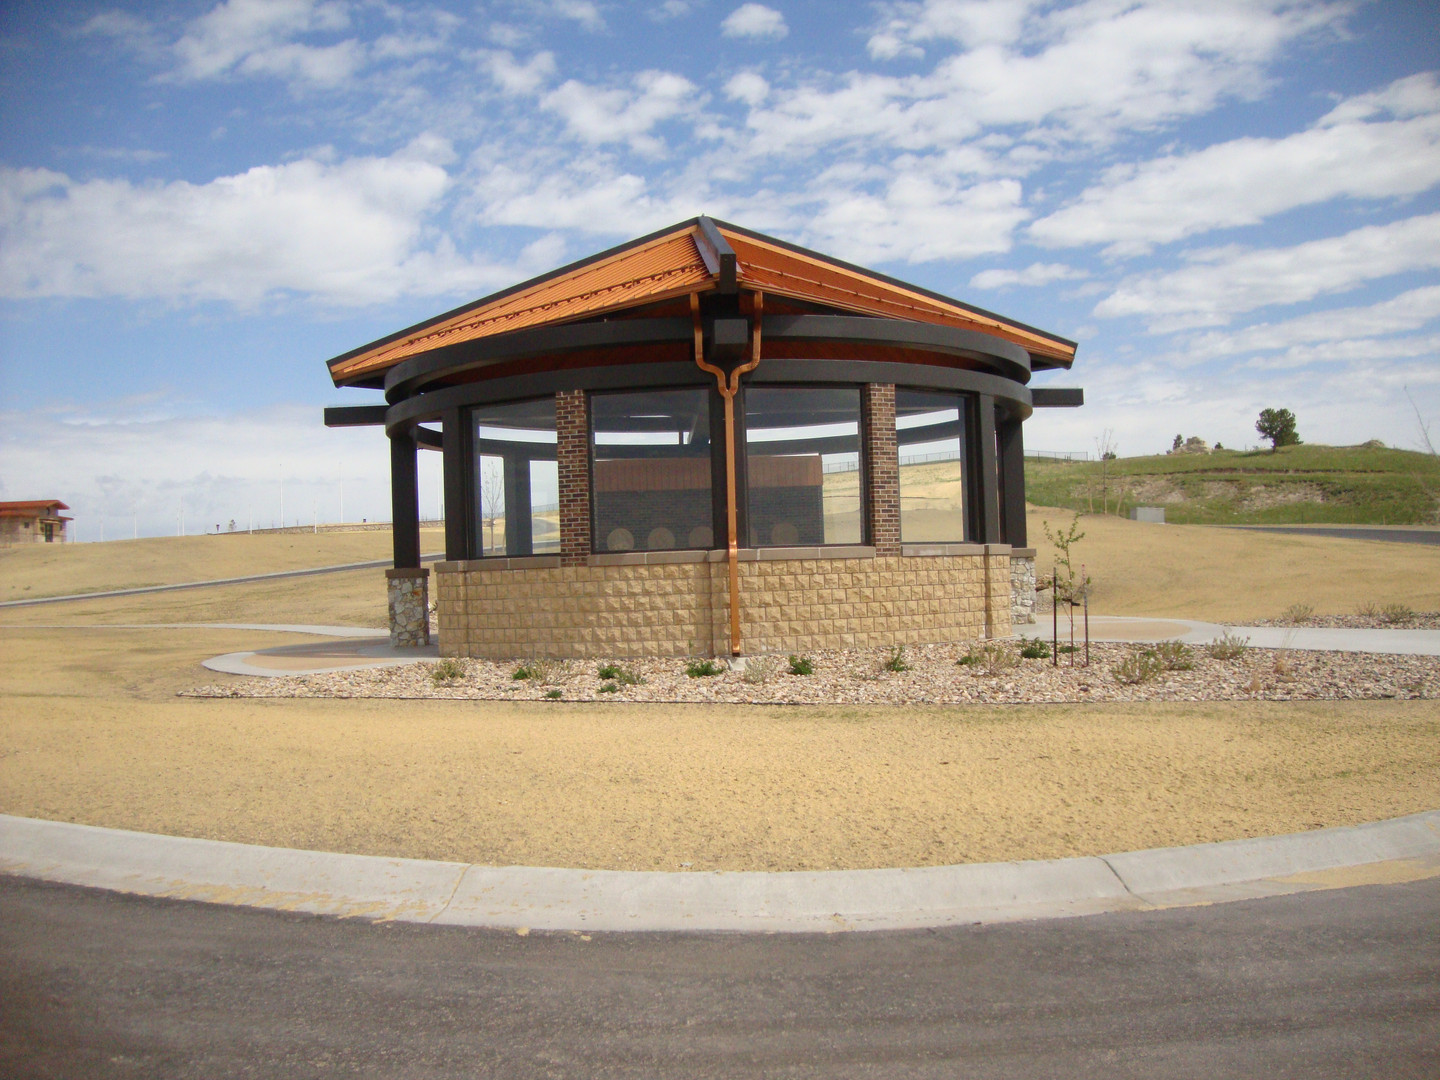 Oglala Sioux Tribe Veterans Cemetery Committal Shelter in Kyle, SD